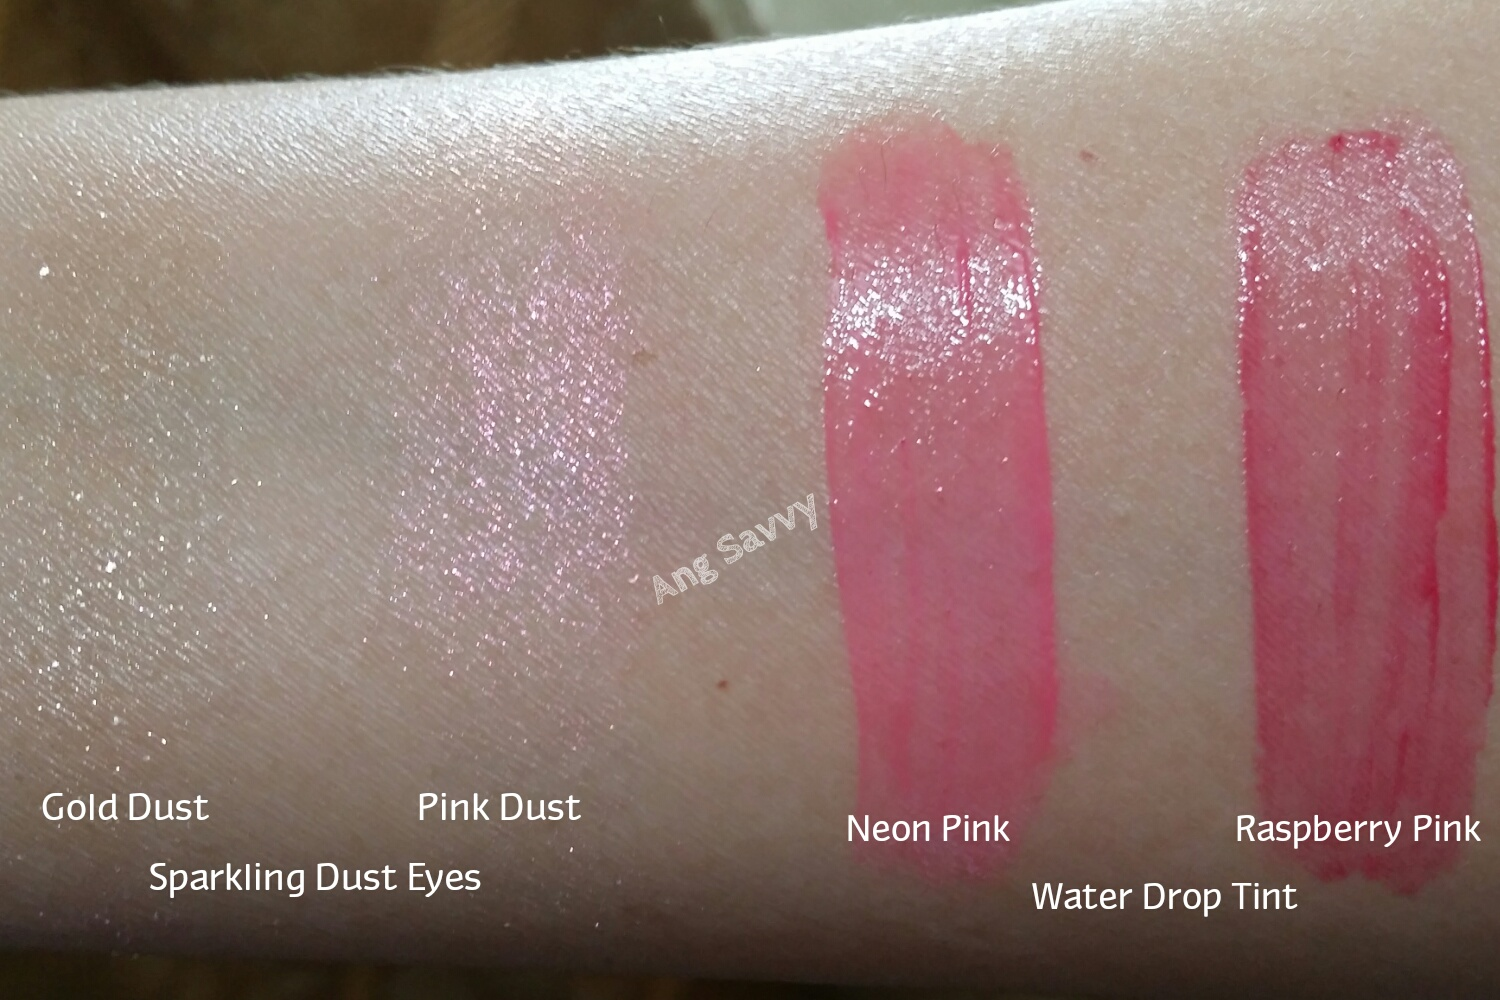 LANEIGE Sparkling Makeup Collection Swatch